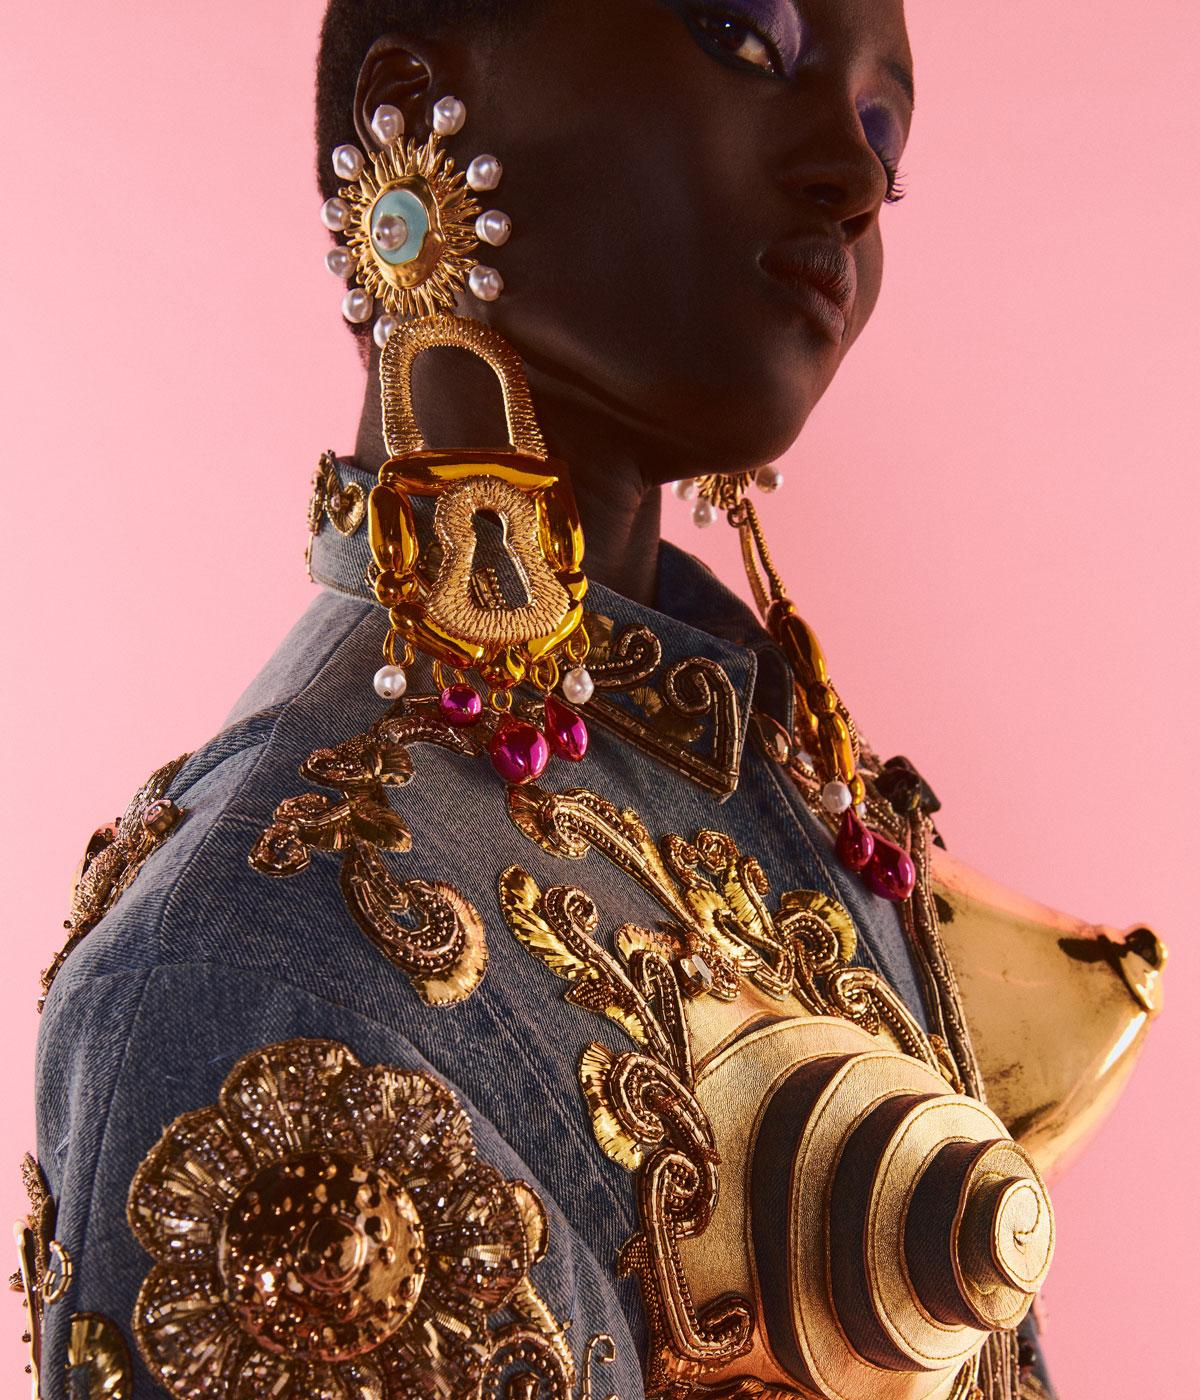 Woman wearing big gold earrings and gold breasts on her jacket